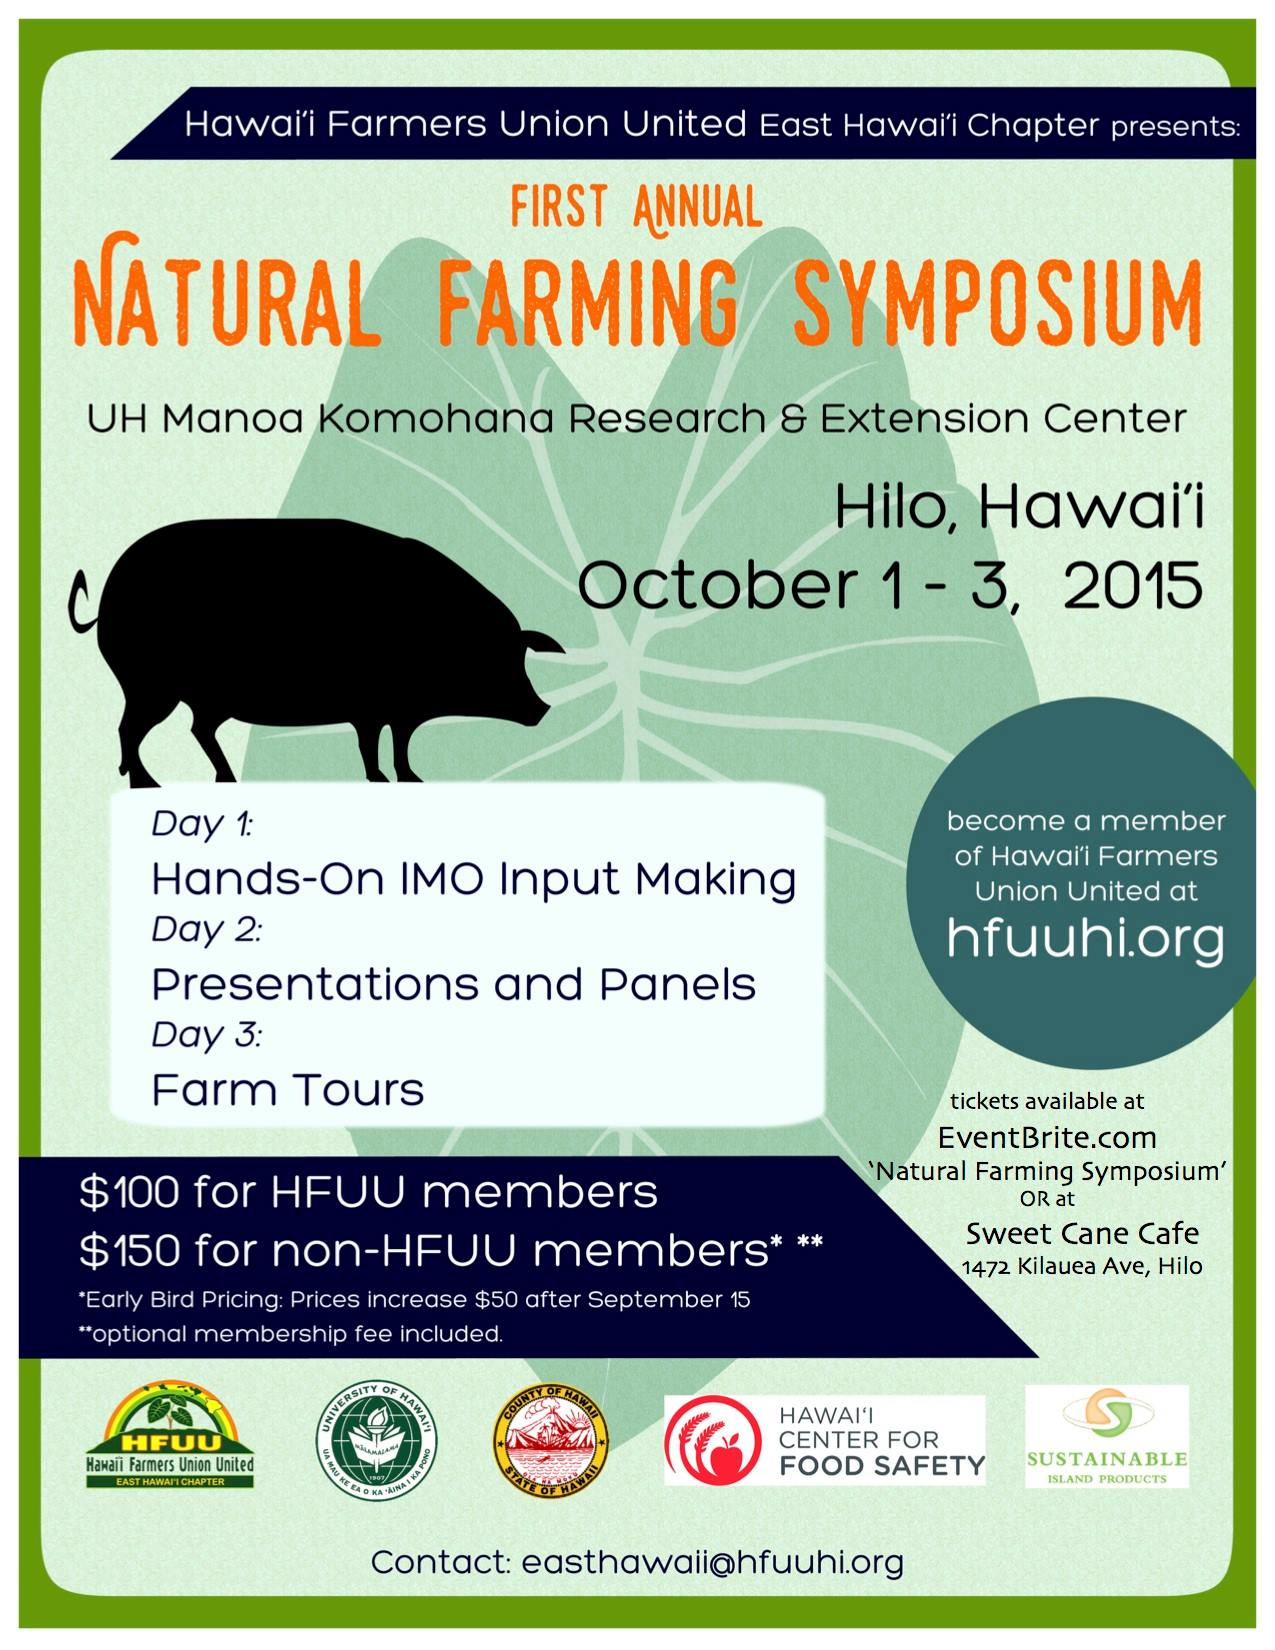 2015 Natural Farming Symposium: Day 2